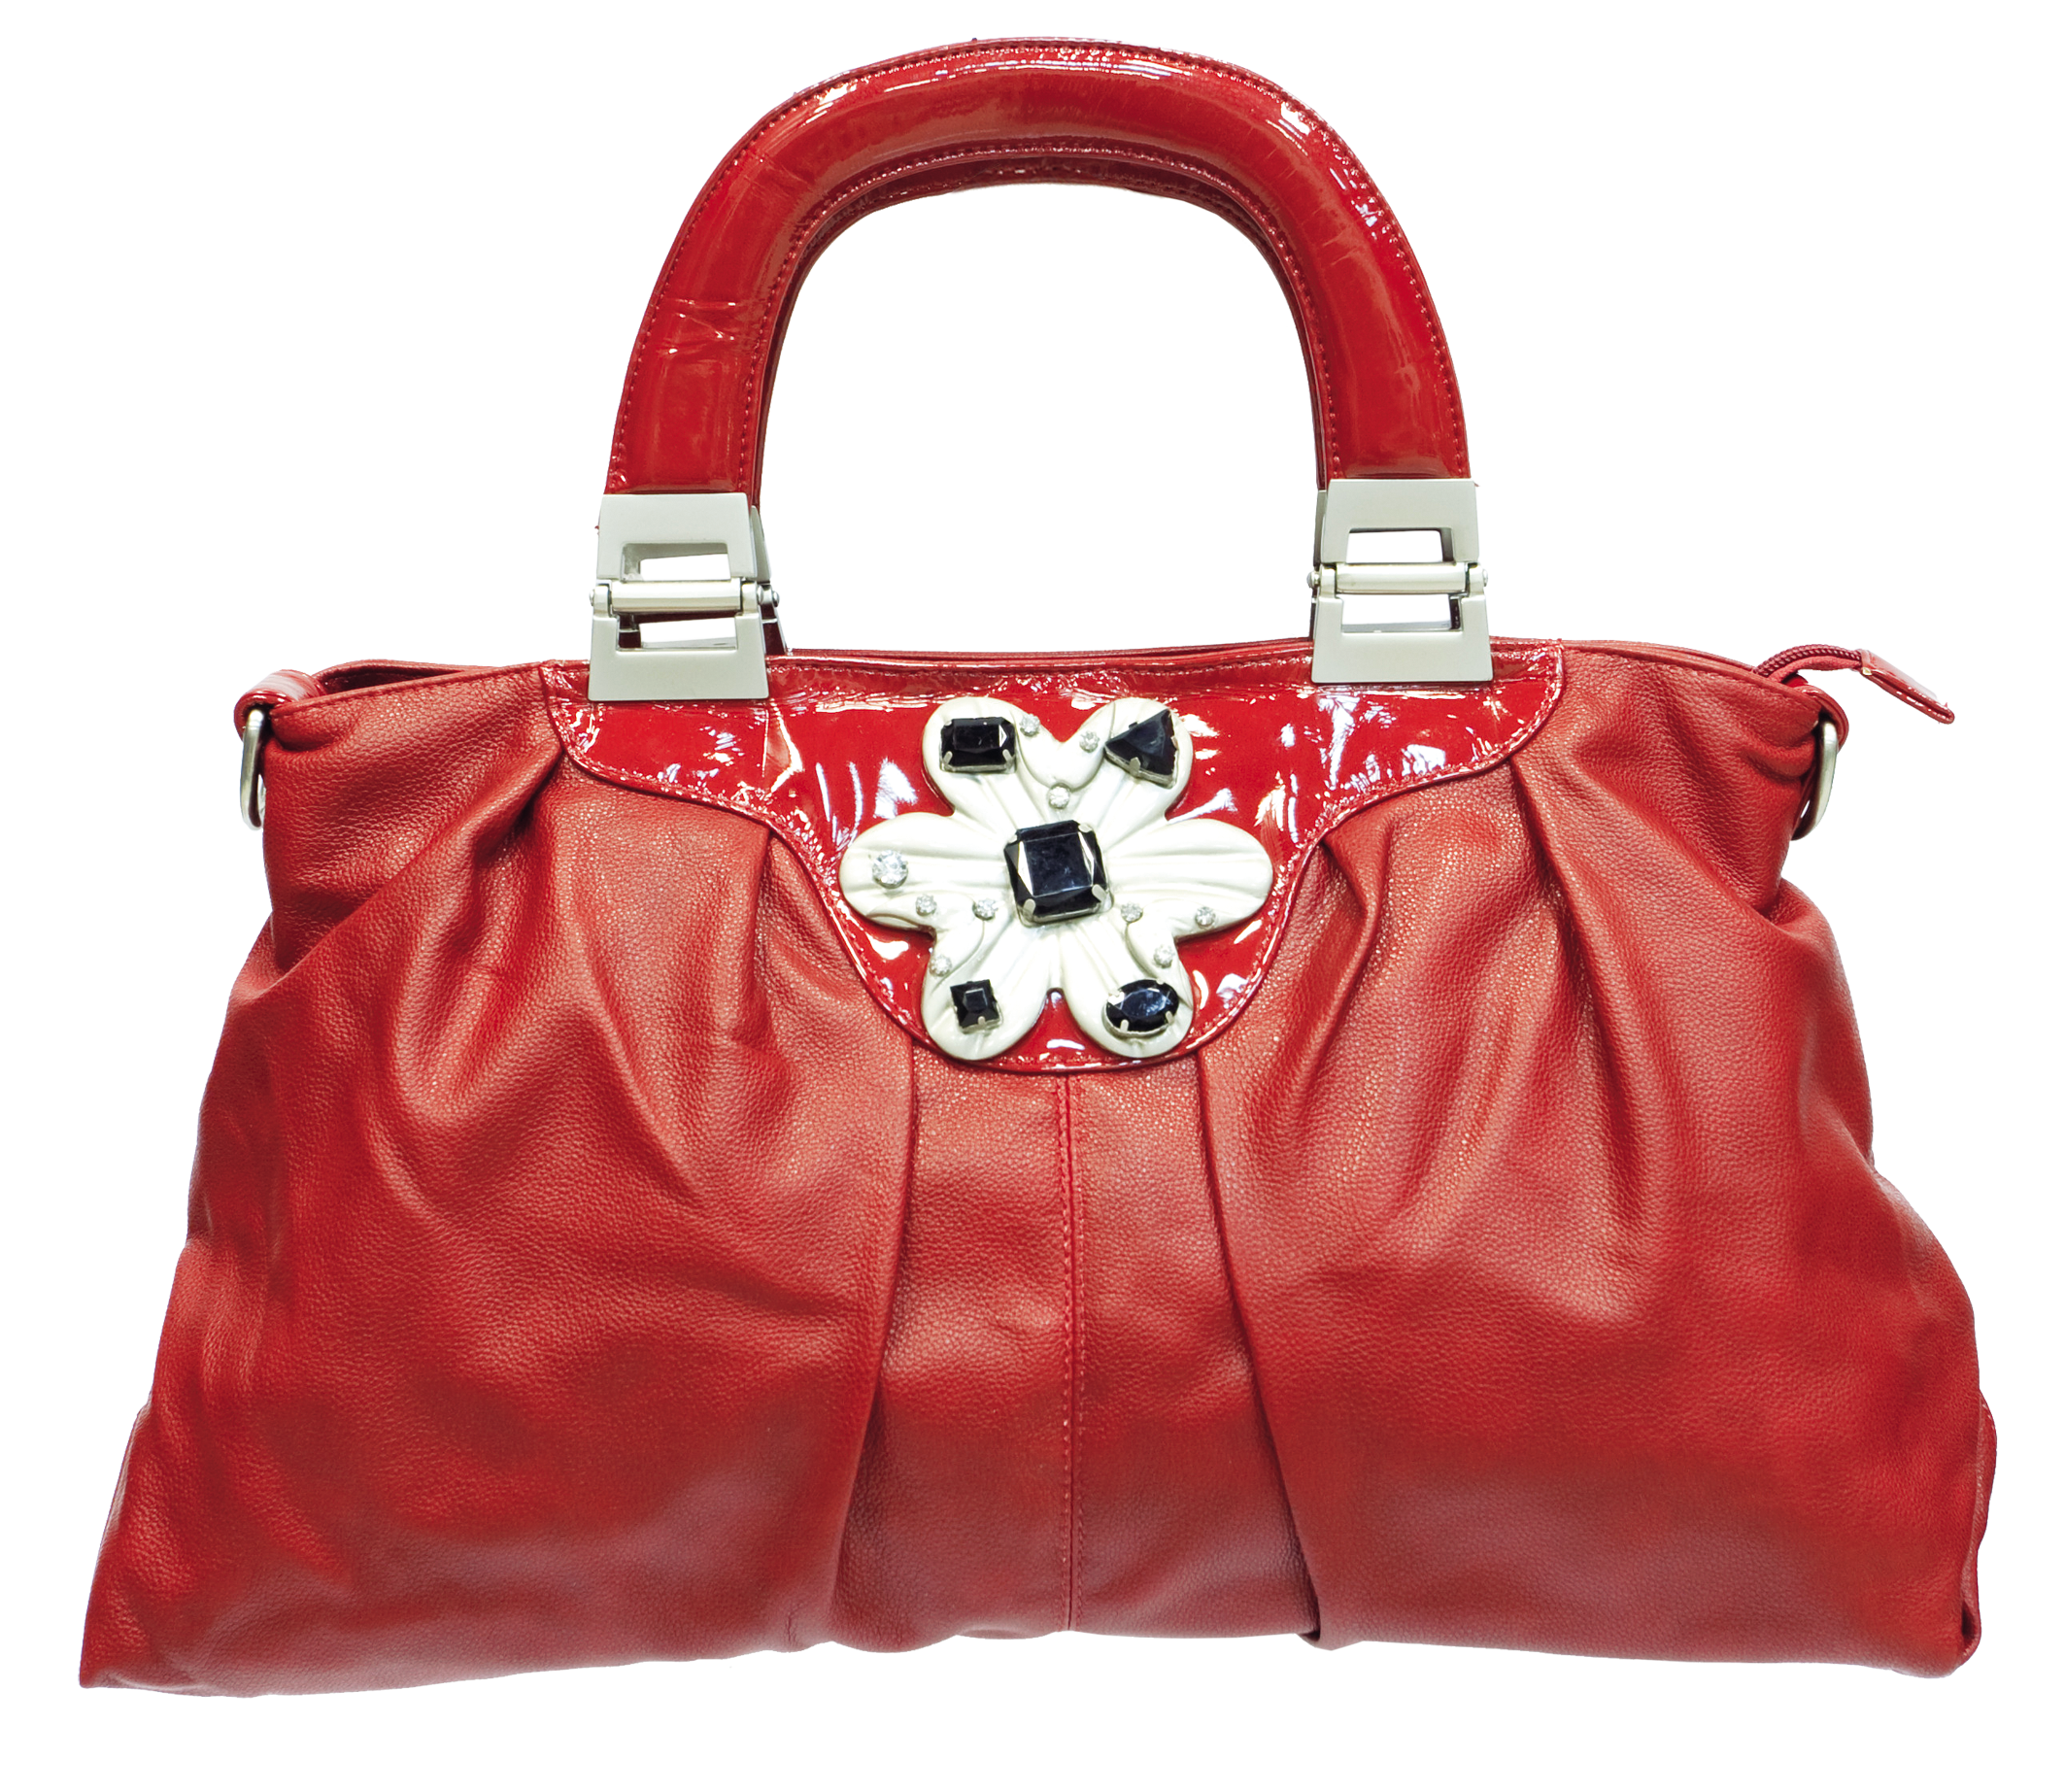 Red purse png. Women bag clipart web